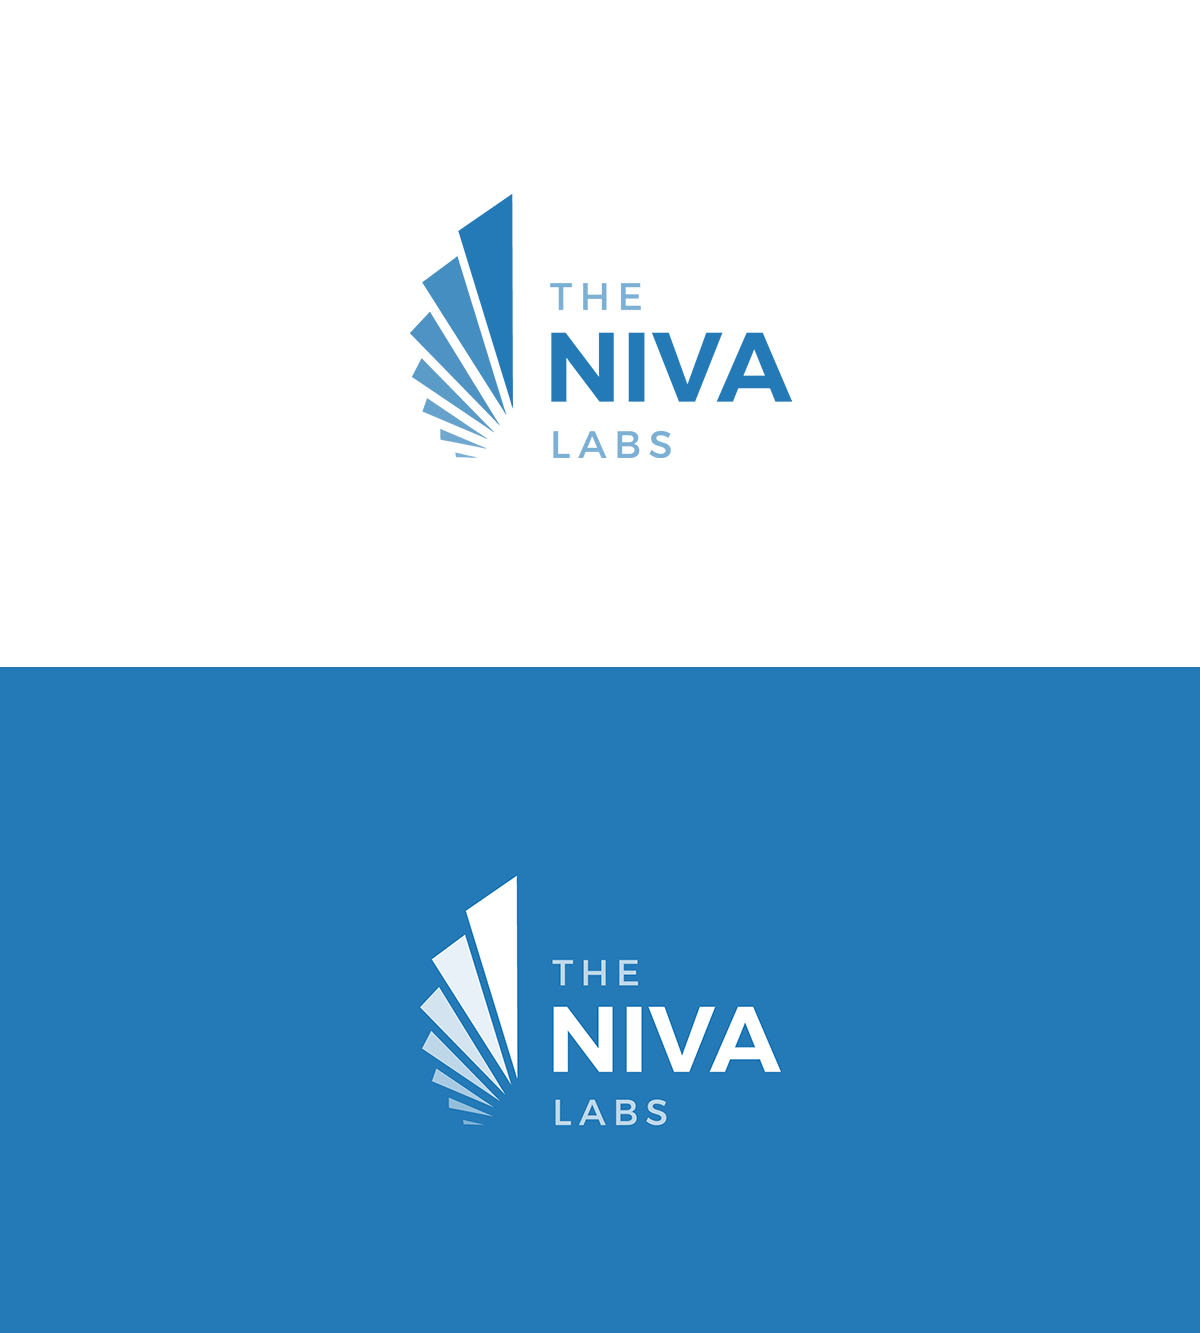 Blue Niva logo on white background and White Niva Logo on blue background.